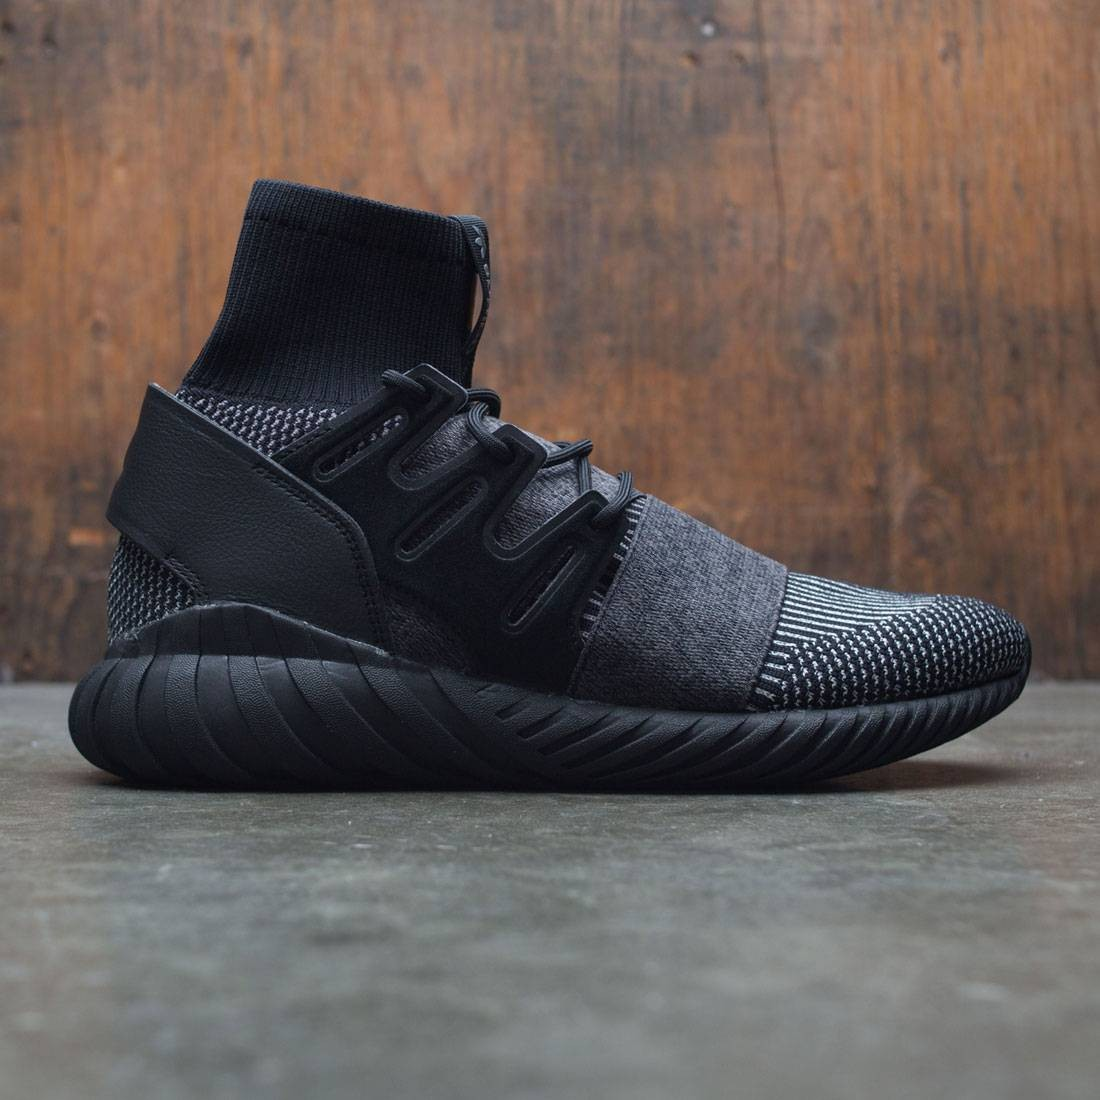 8b771312a0cc Adidas Men Tubular Doom Primeknit black core black grey four